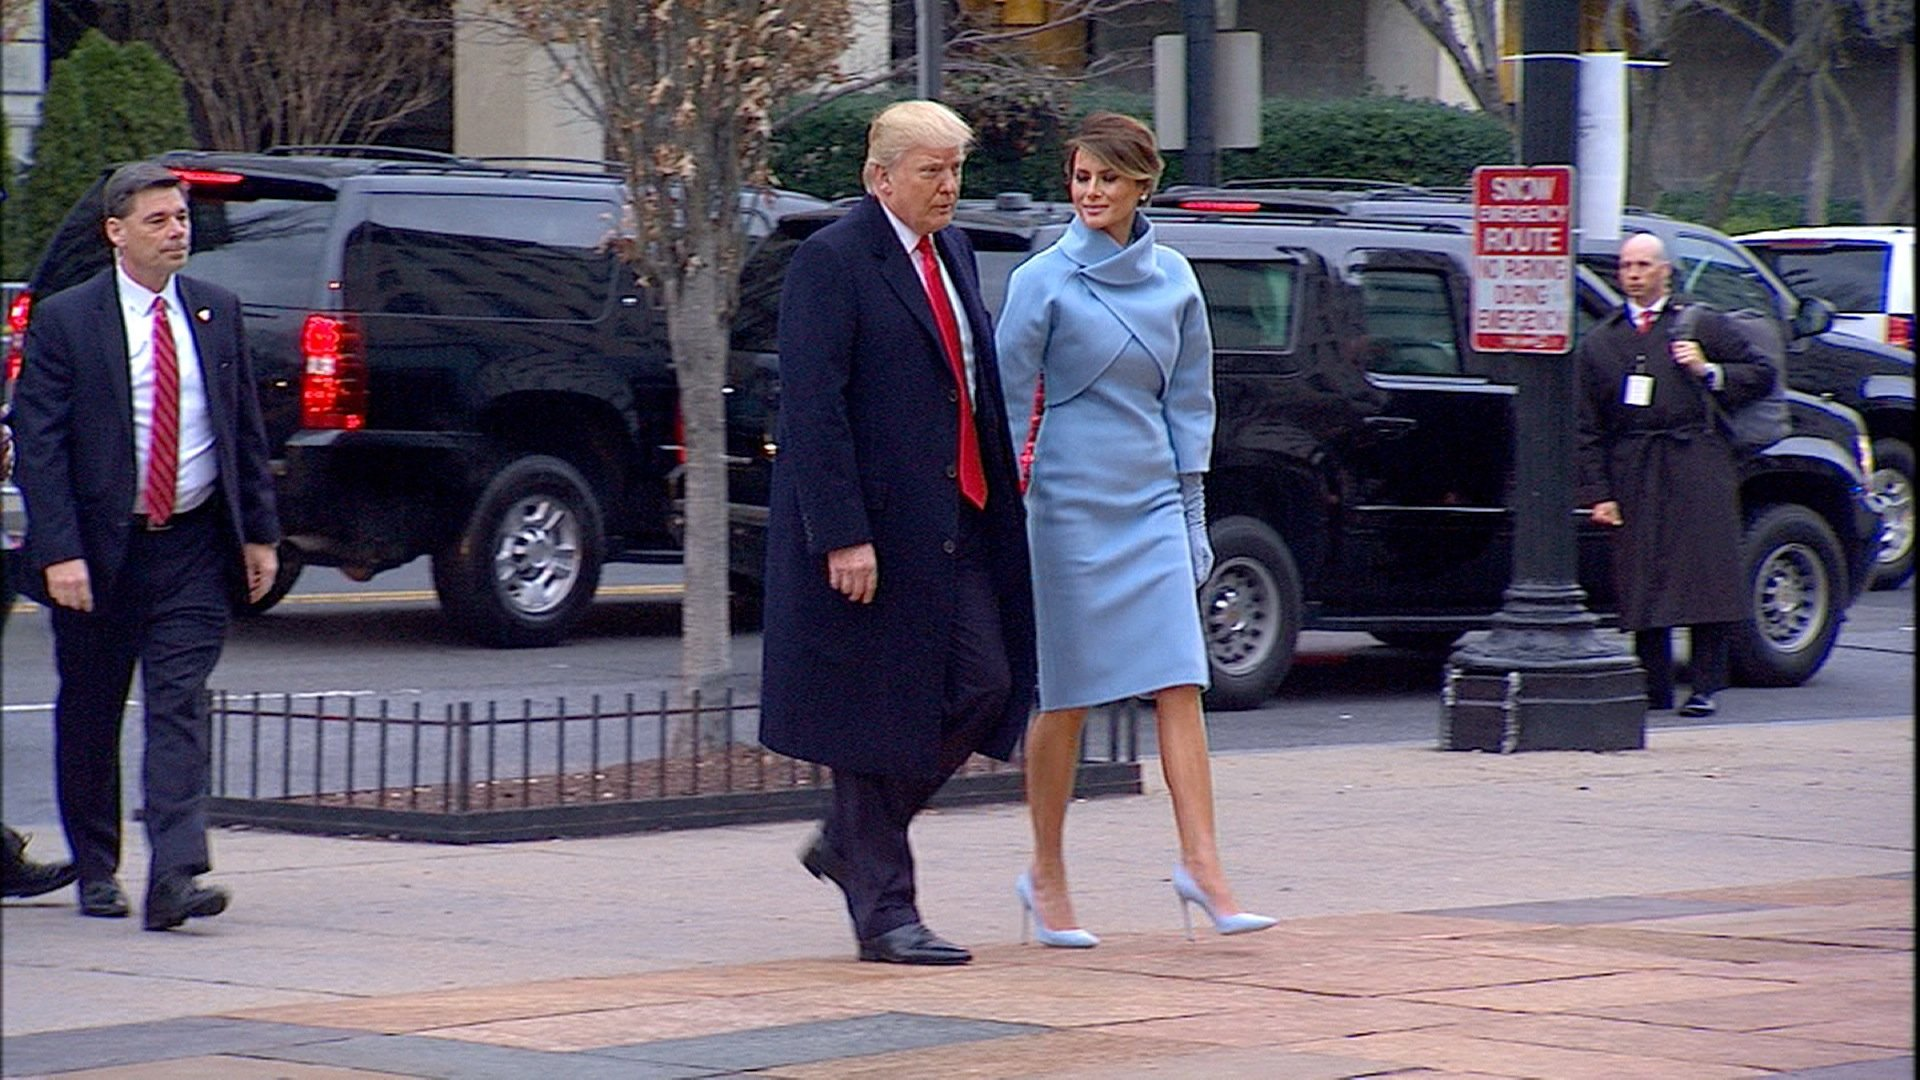 Donald Trump and Melania attending church service. Trump began a day of ceremony Friday morning by attending a traditional inauguration day service at Saint John's Church, across Lafayette Square from the White House.